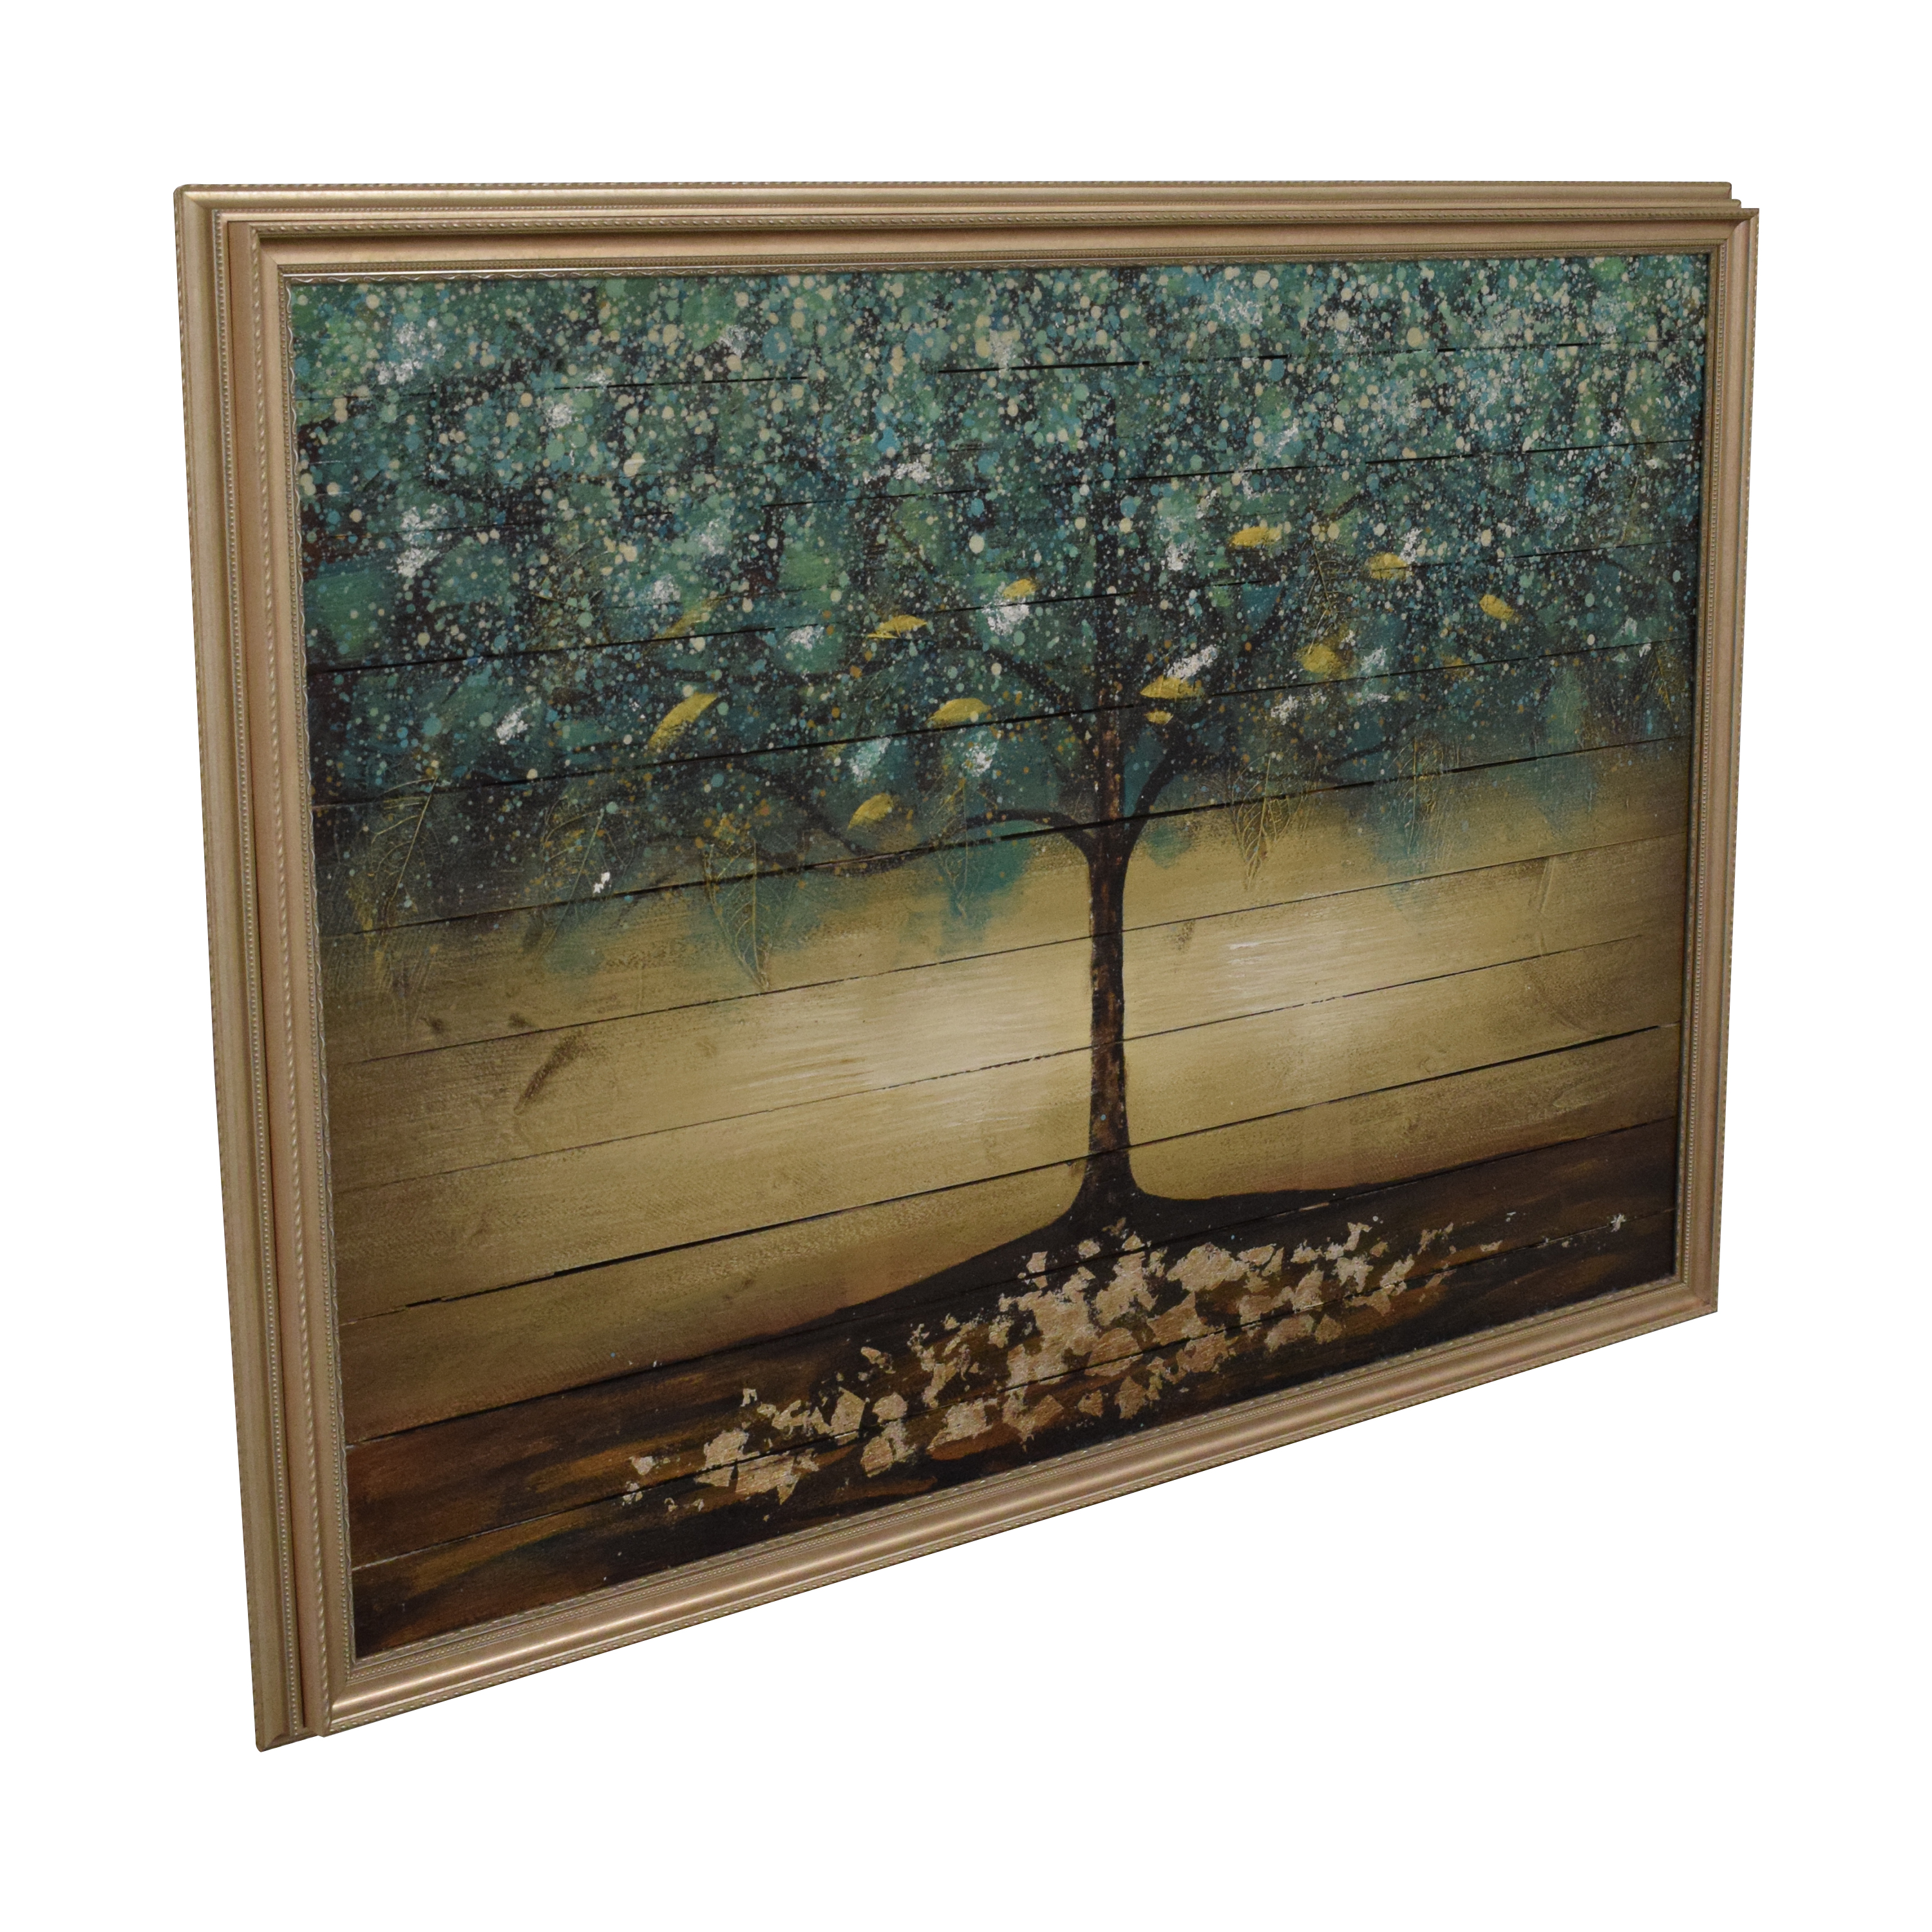 Bed Bath & Beyond Framed Tree Wall Art discount